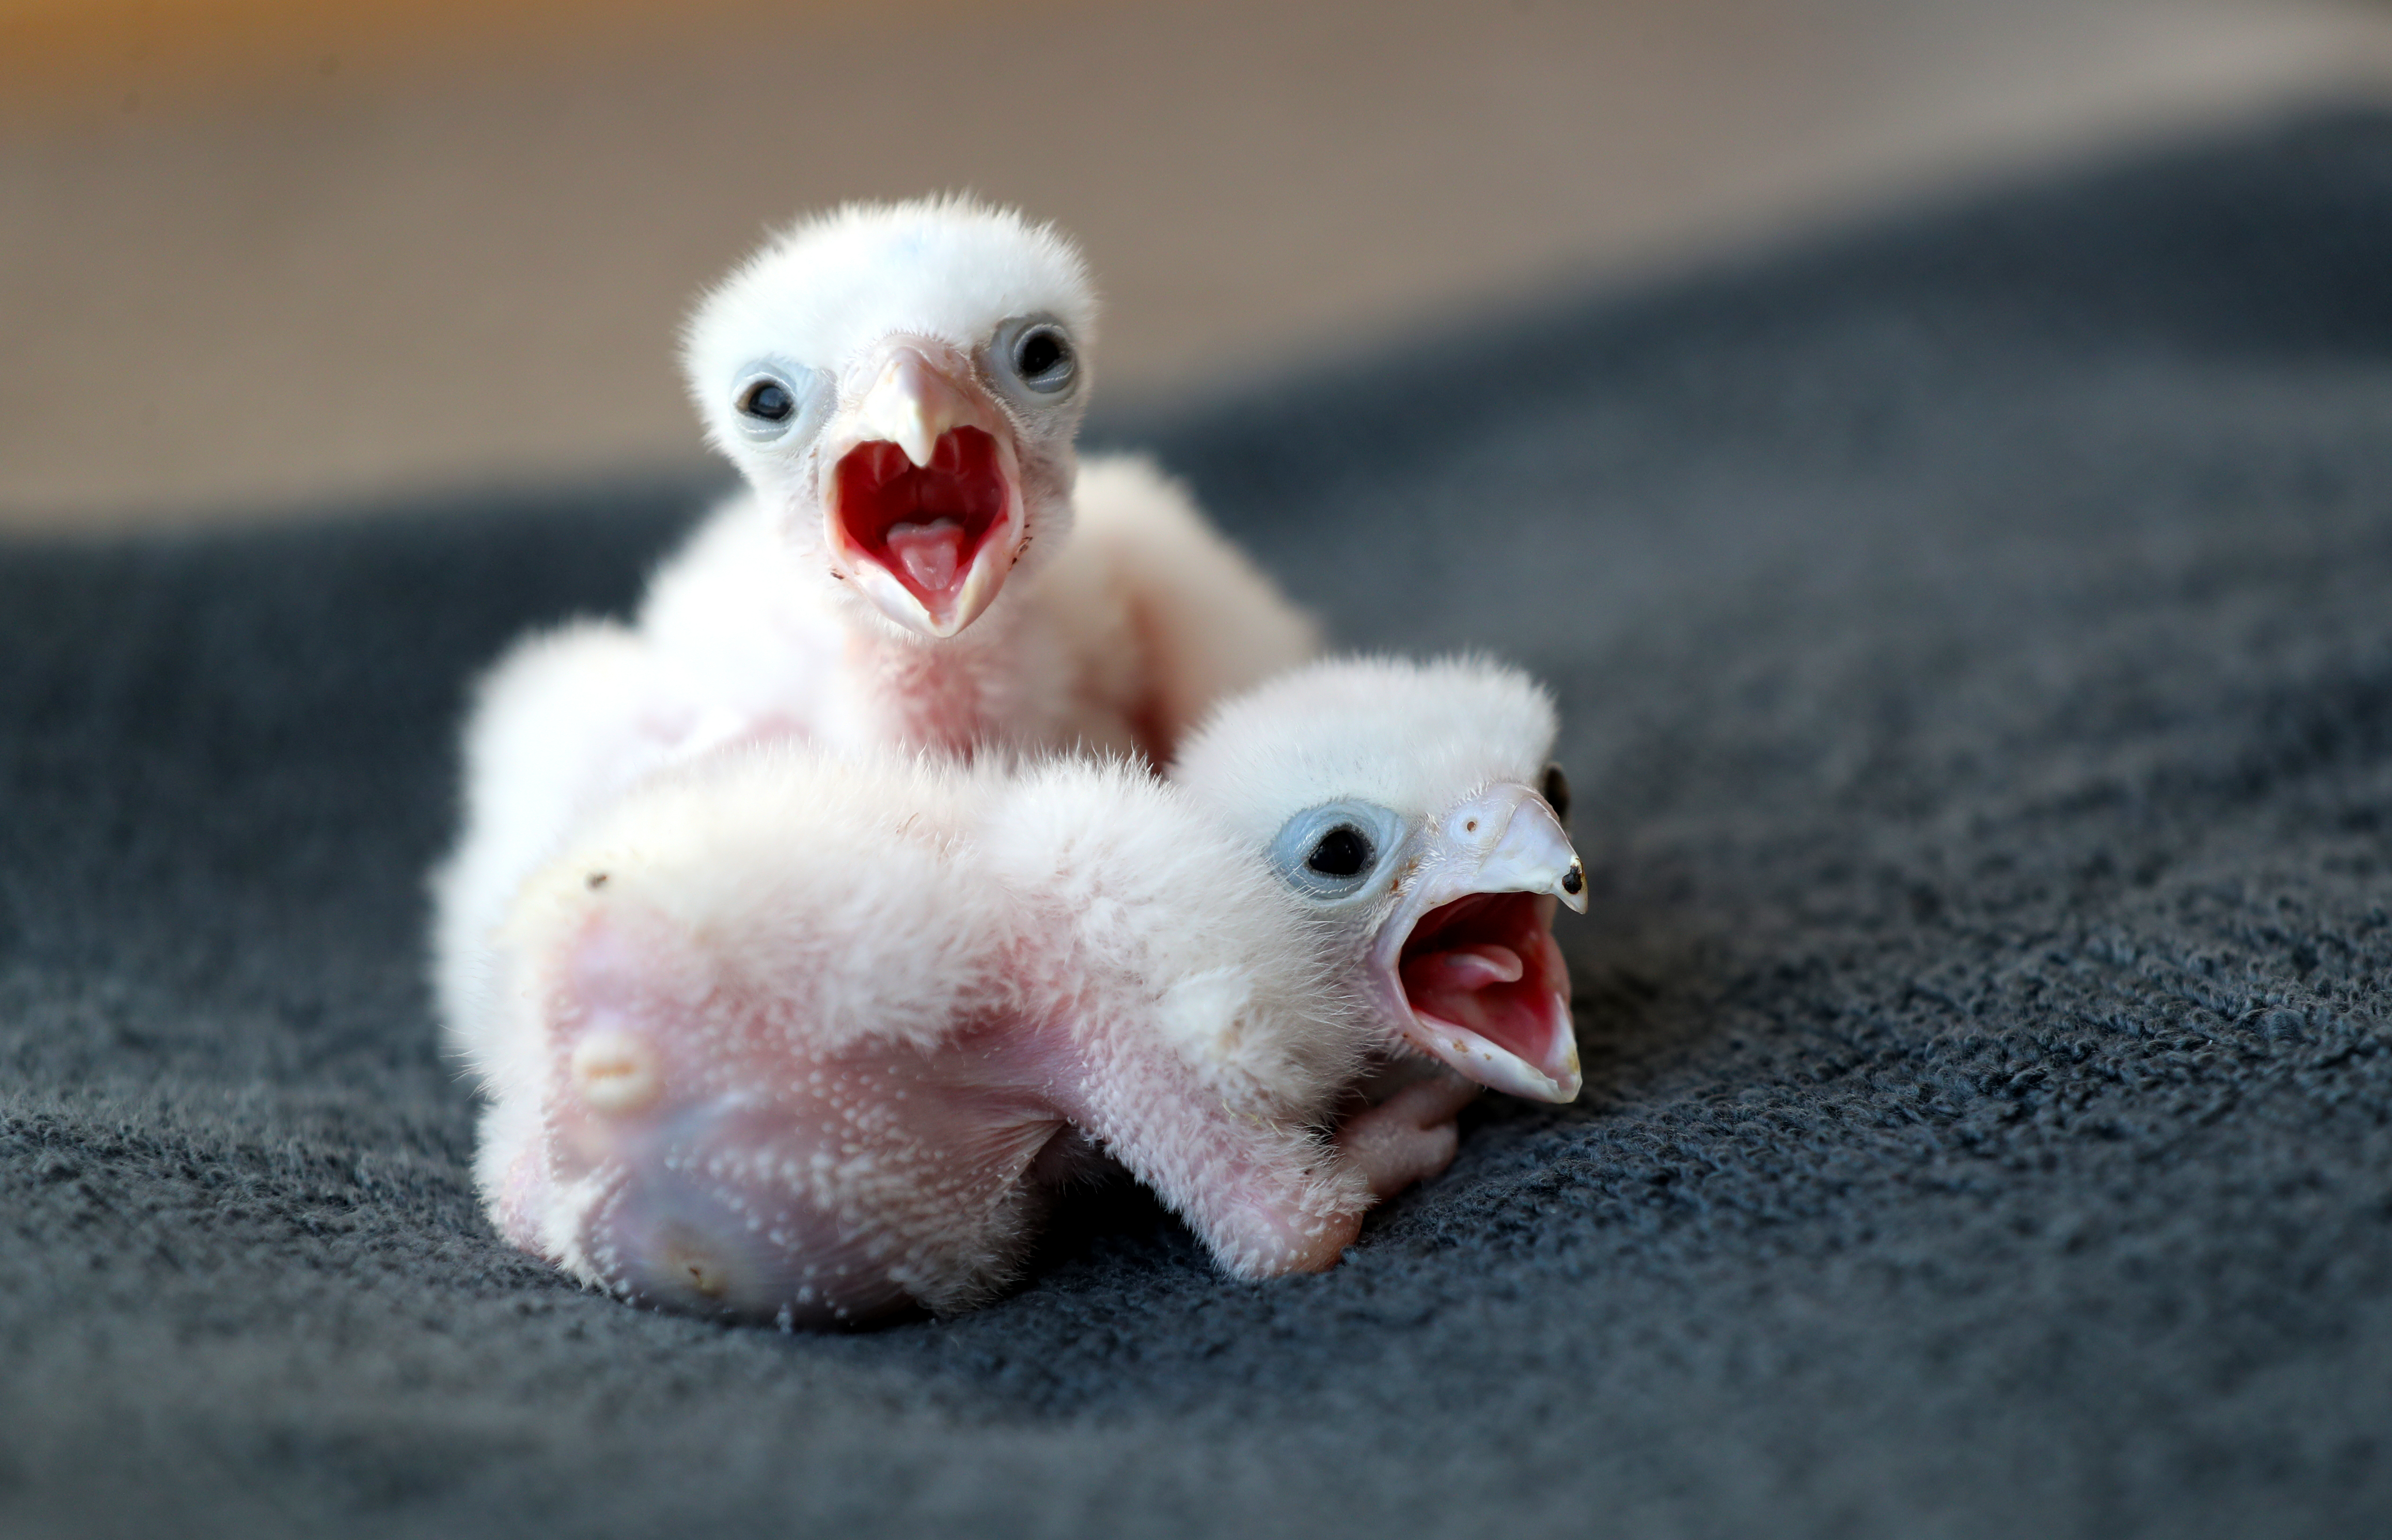 Baby Laggar falcons at The International Centre for Birds of Prey in Newent, after Prime Minister Boris Johnson has put the UK in lockdown to help curb the spread of the coronavirus.